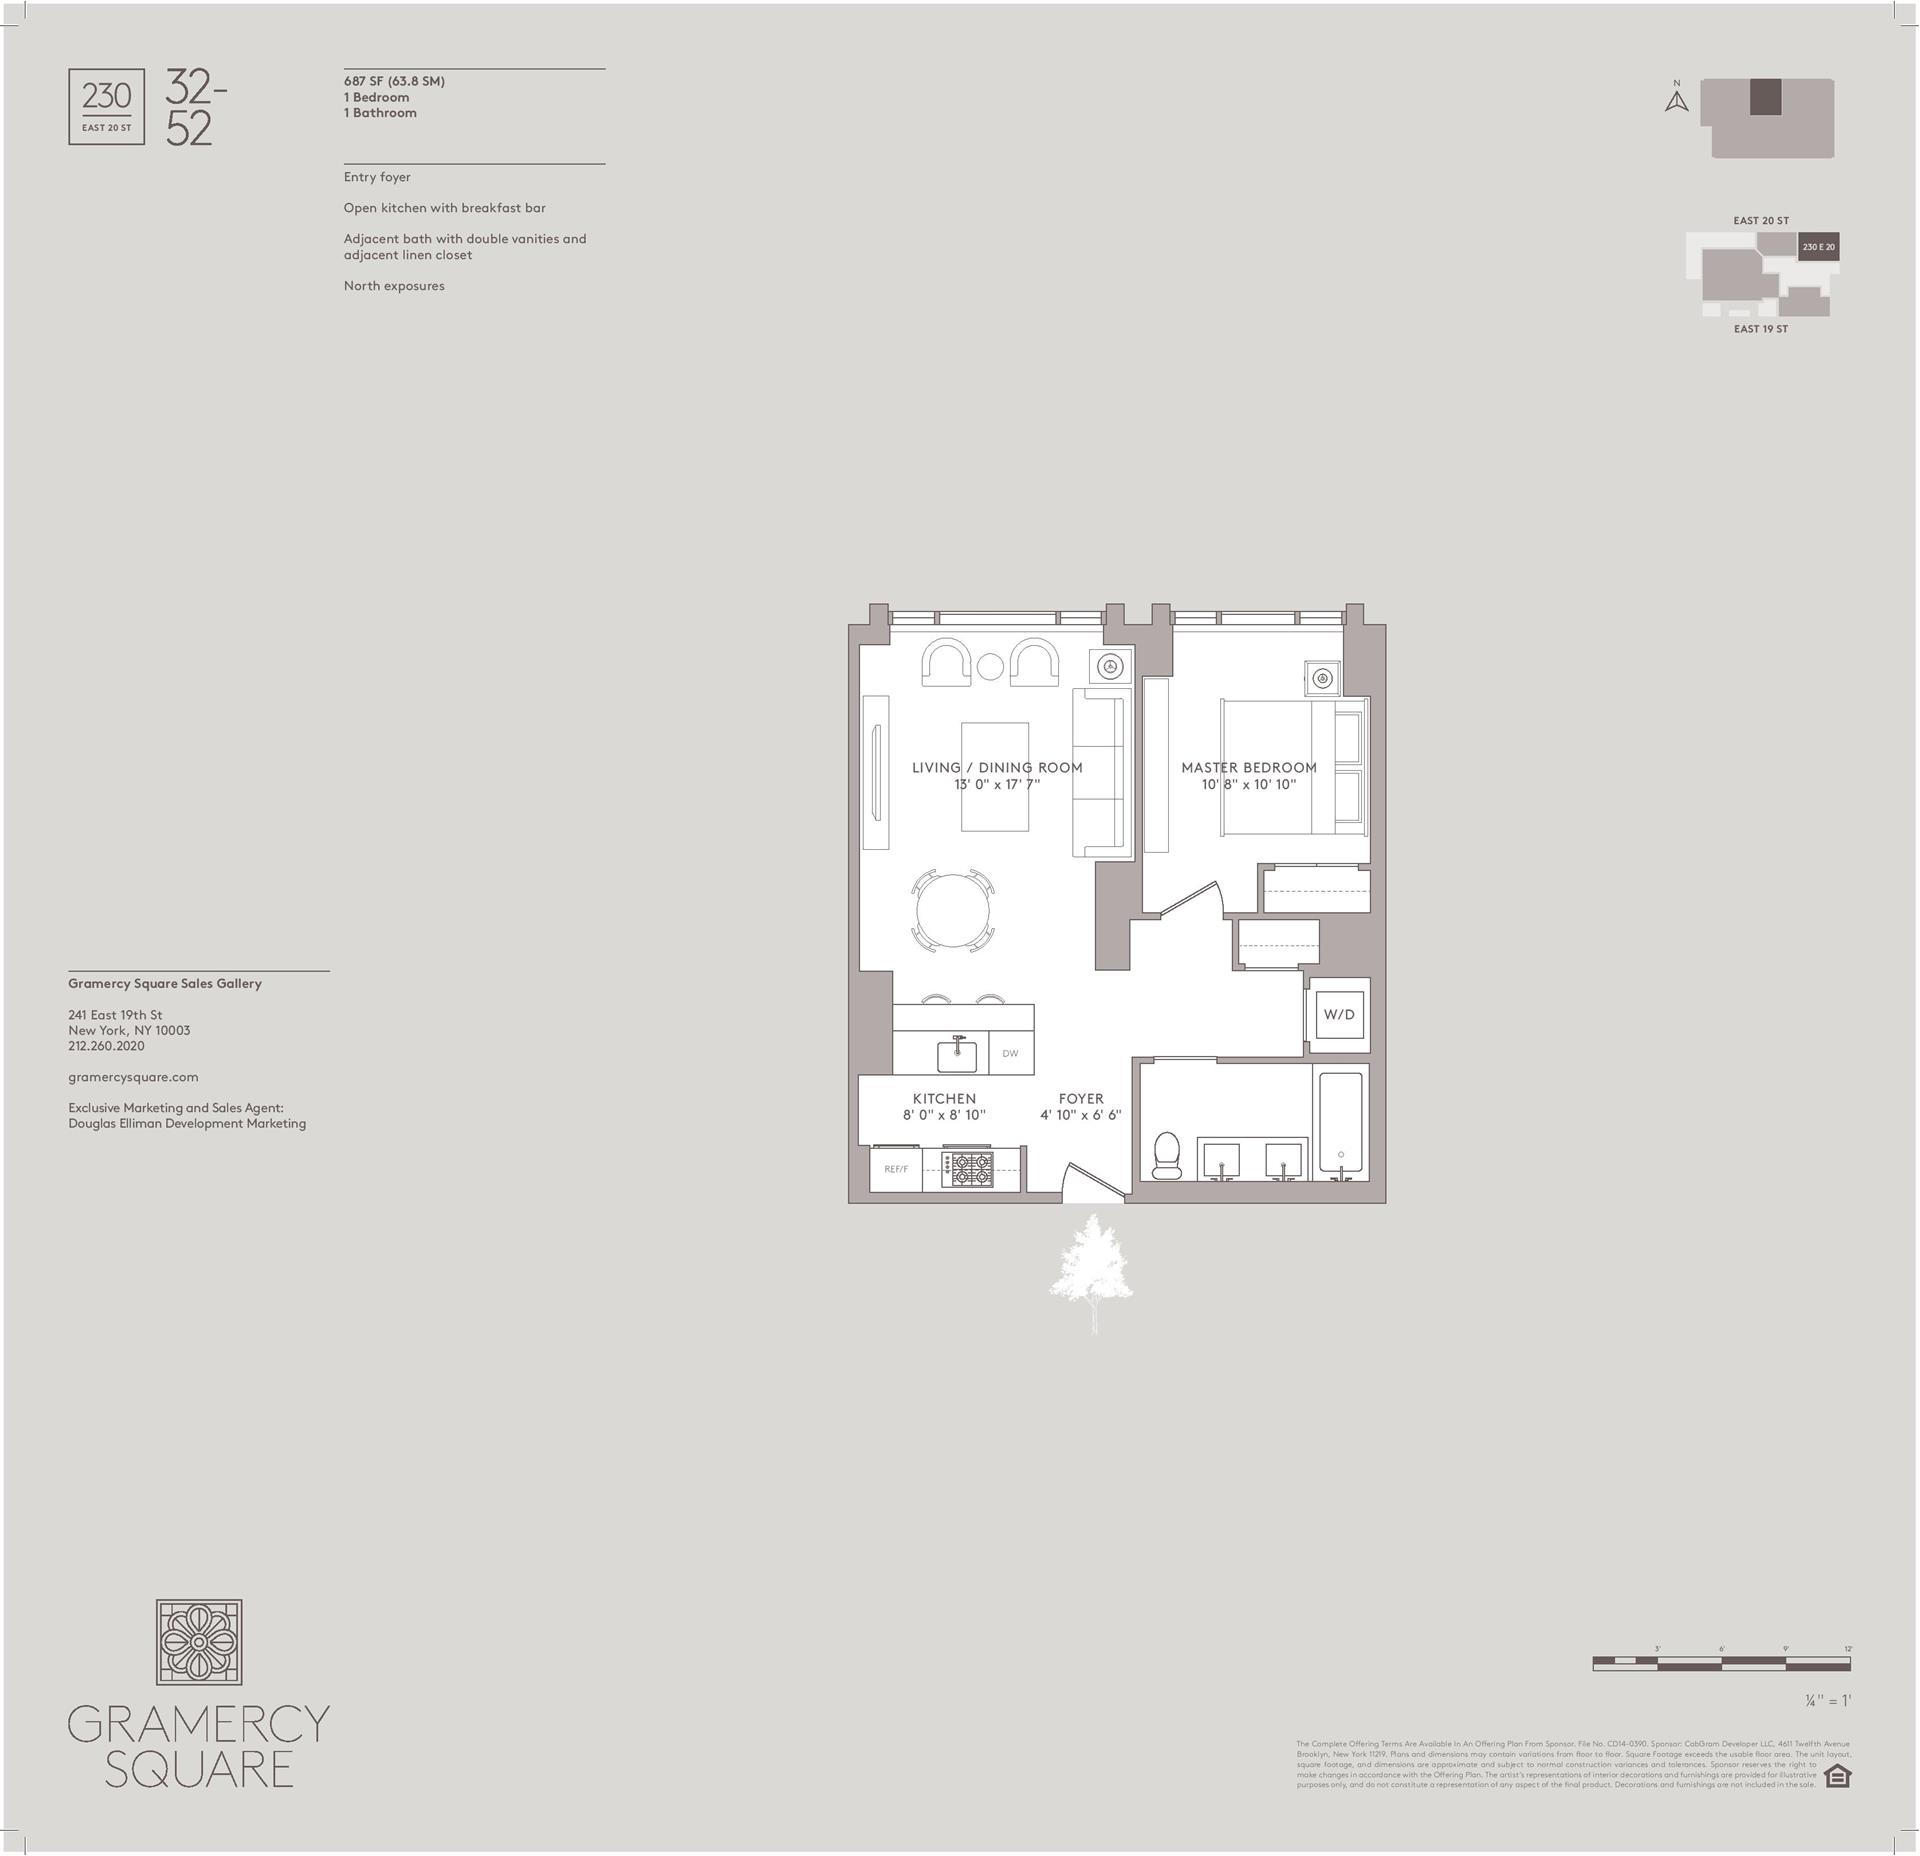 Floor plan of Gramercy Square, 230 East 20th St, 52 - Gramercy - Union Square, New York